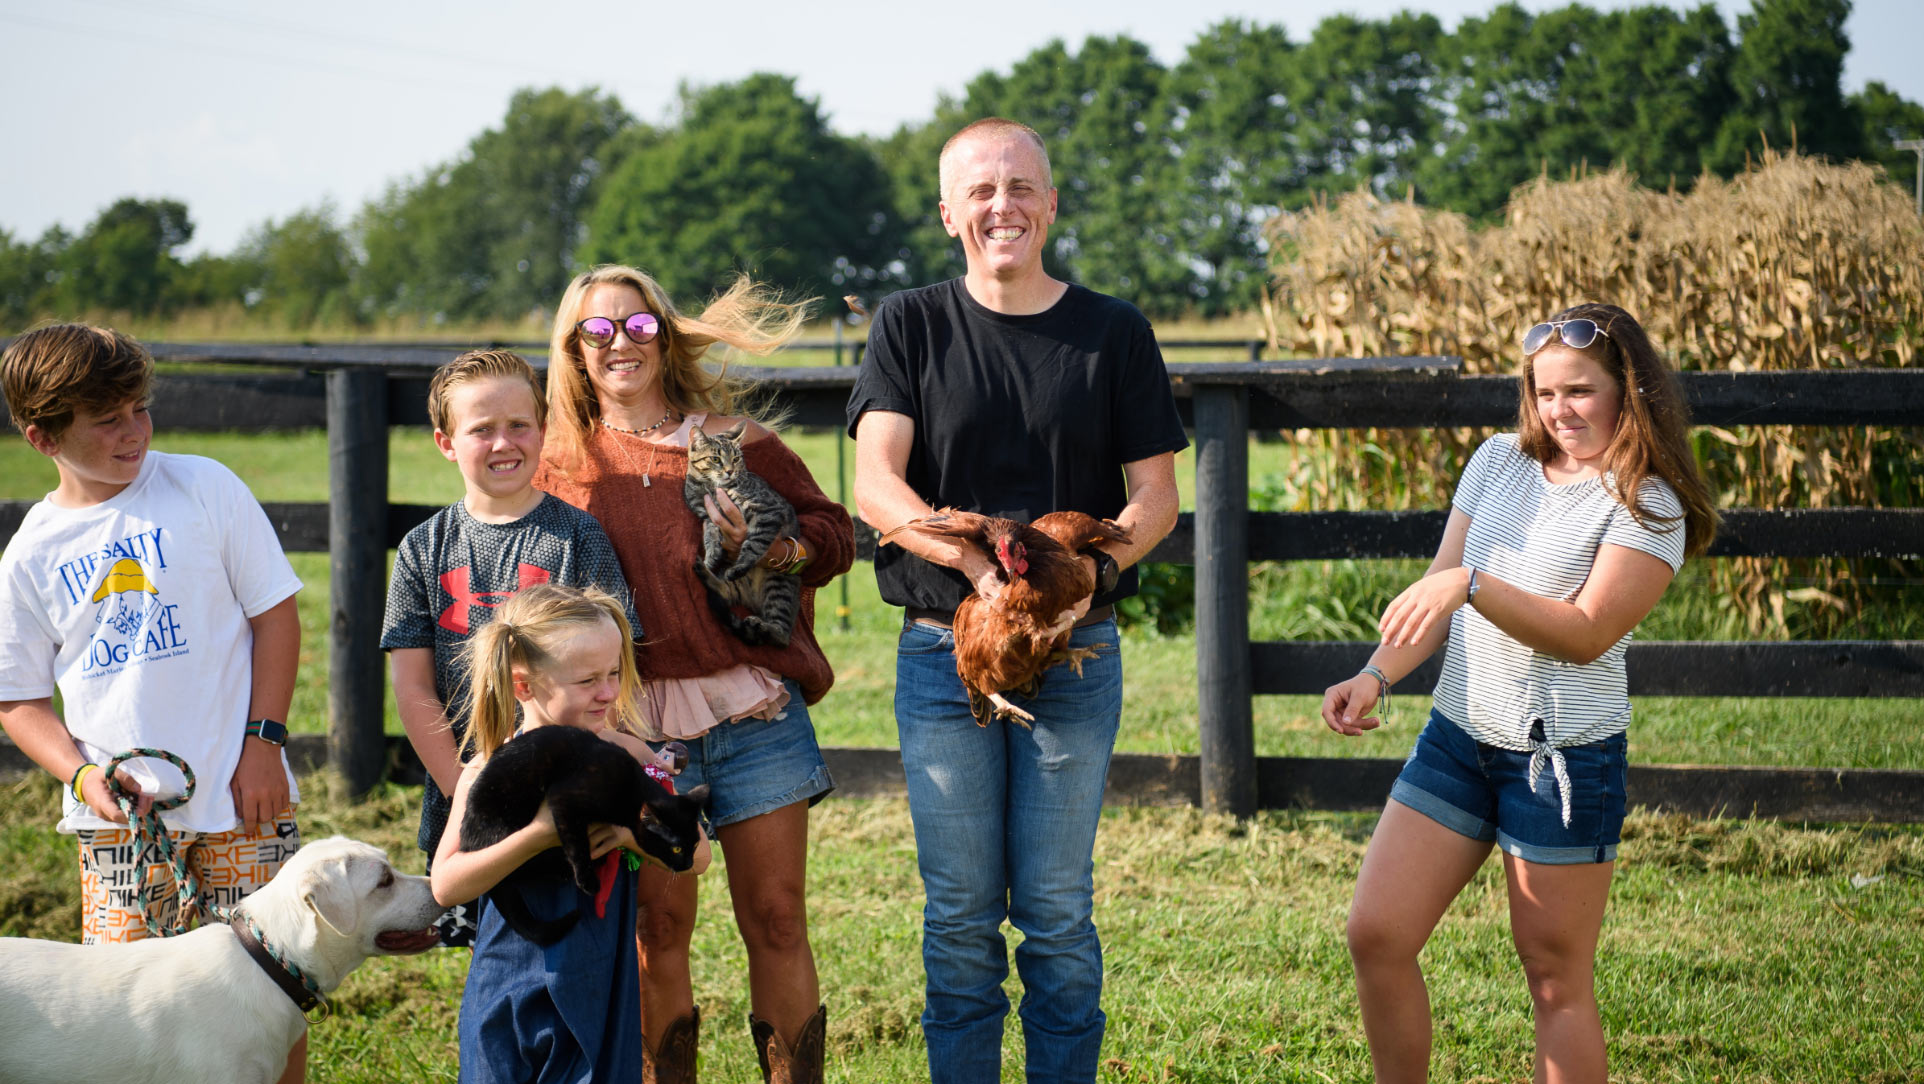 Dr. Day stands in the middle of the photo, holding a chicken that is trying to fly away. His wife and four children stand around him, holding cats and a family dog. Dr. Day is smiling despite the chaos around him.